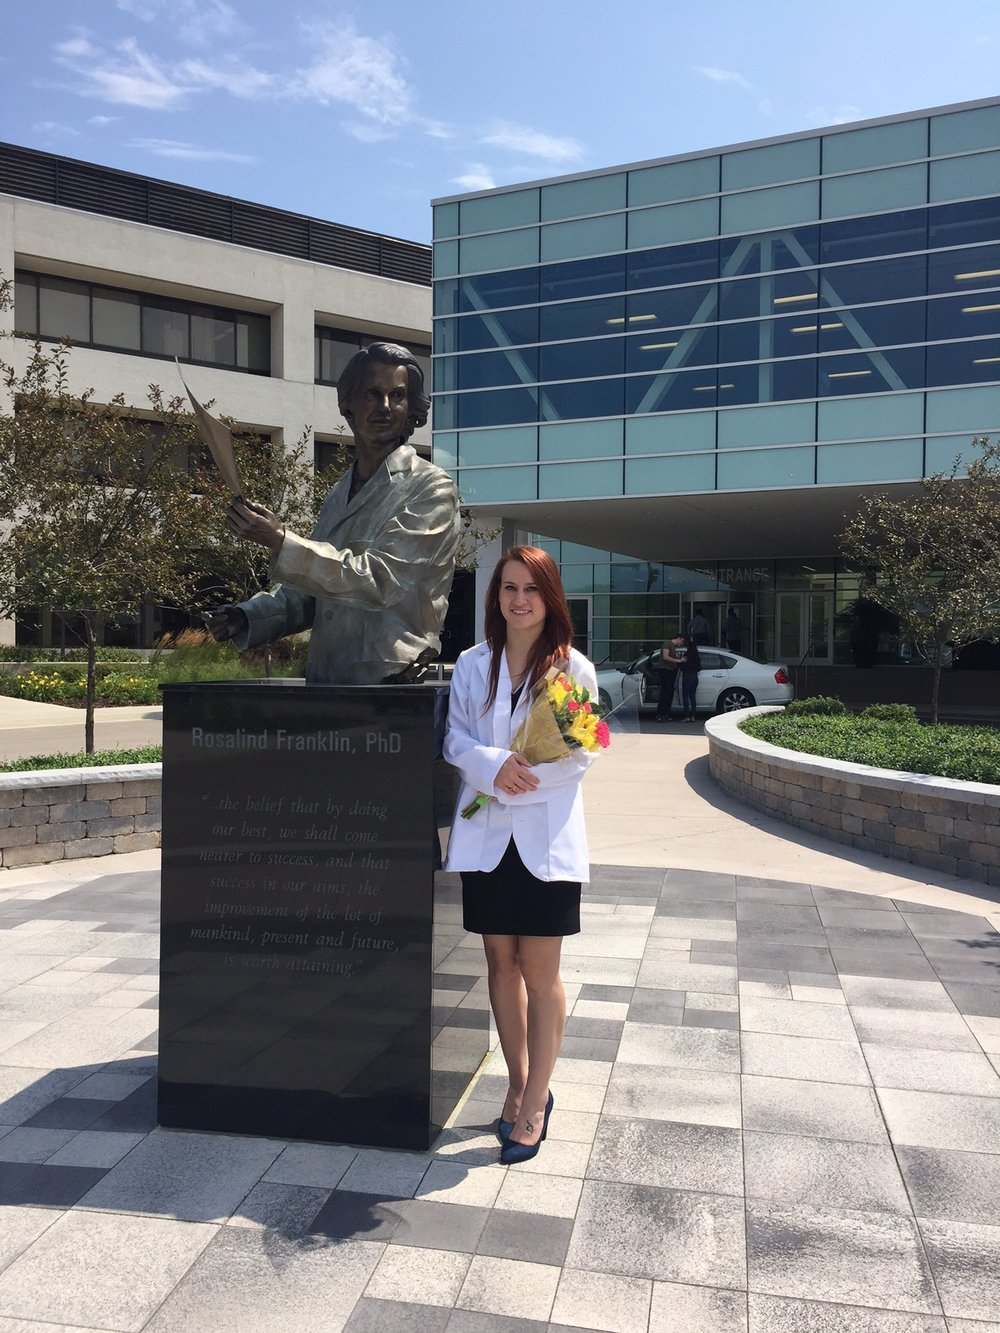 Alyssa Smith with the Rosalind Franklin Statue on the Rosalind Franklin campus